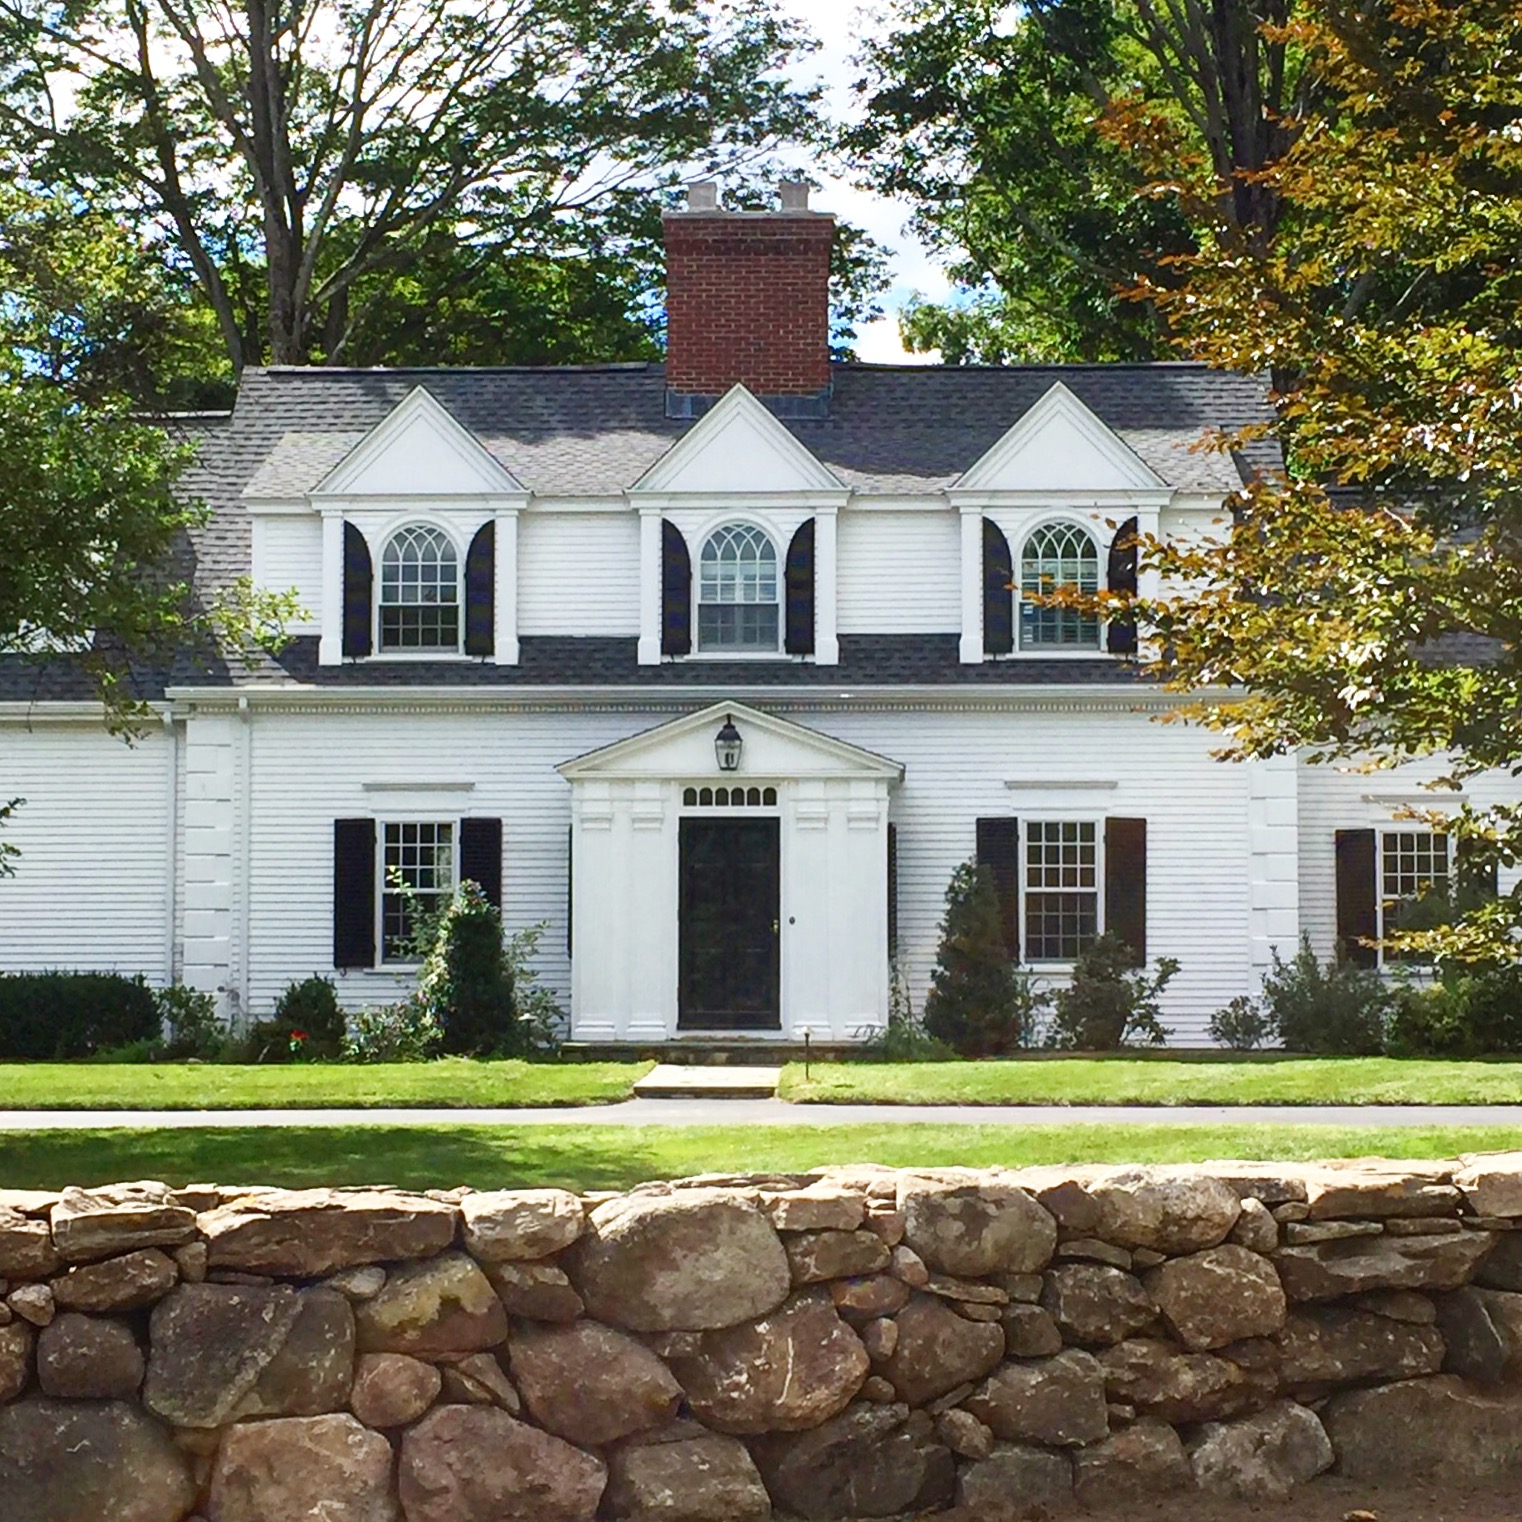 Concord MA antique home with arched window shutters painted white with white trim Concord MA historic New England style home.jpg